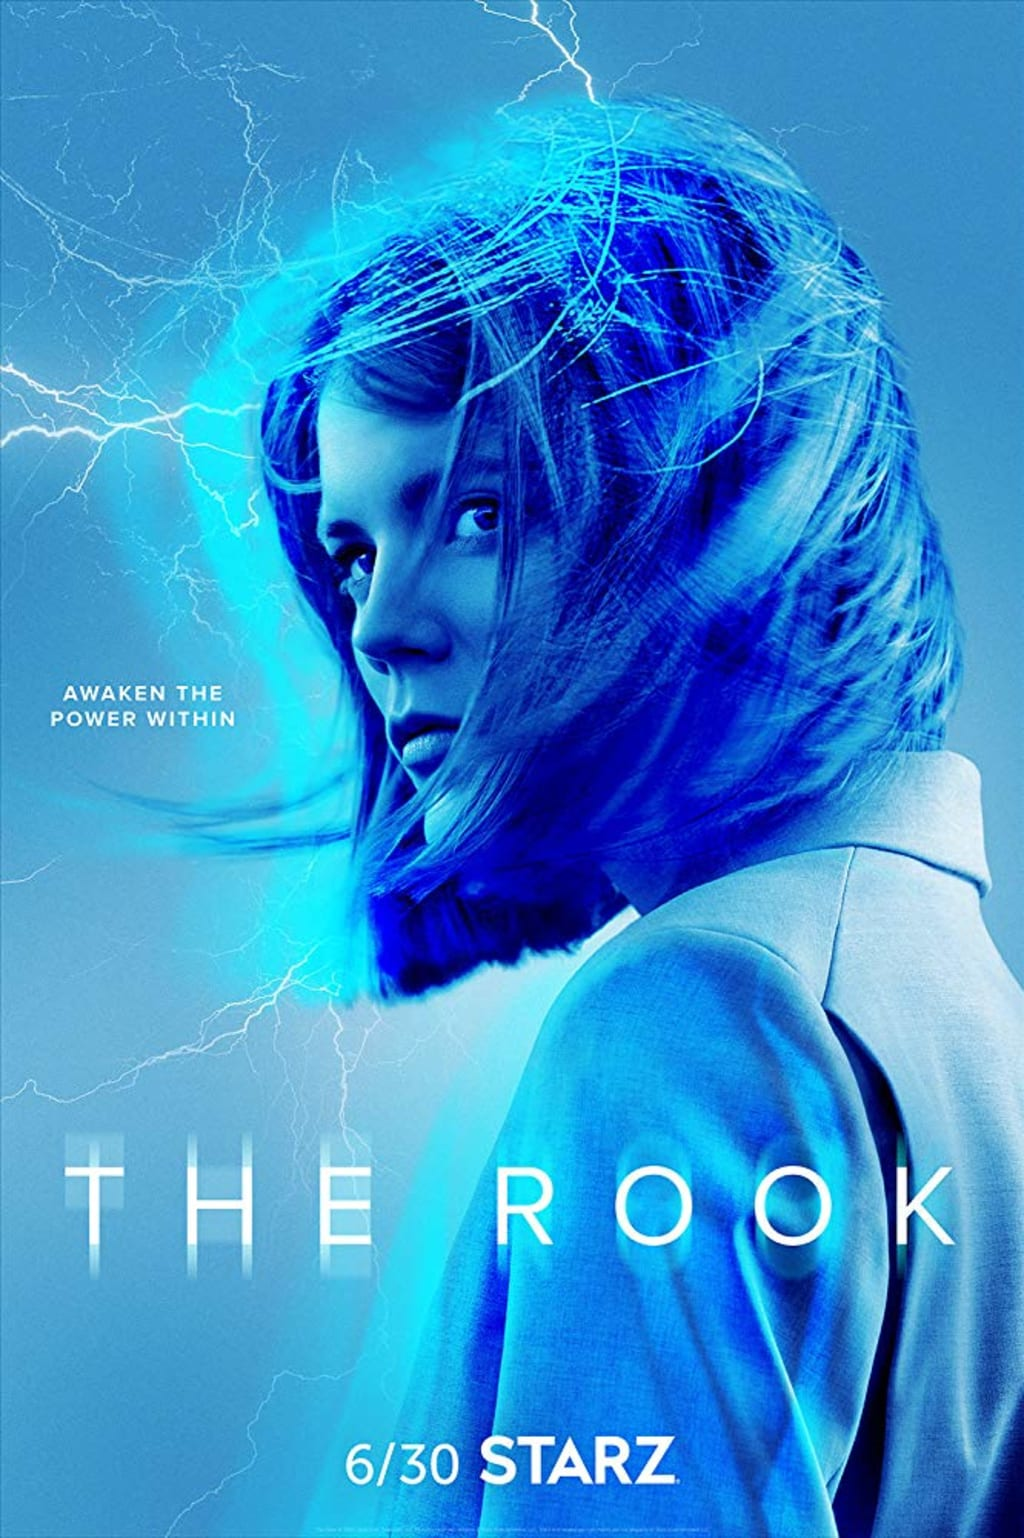 Review of 'The Rook' 1.7